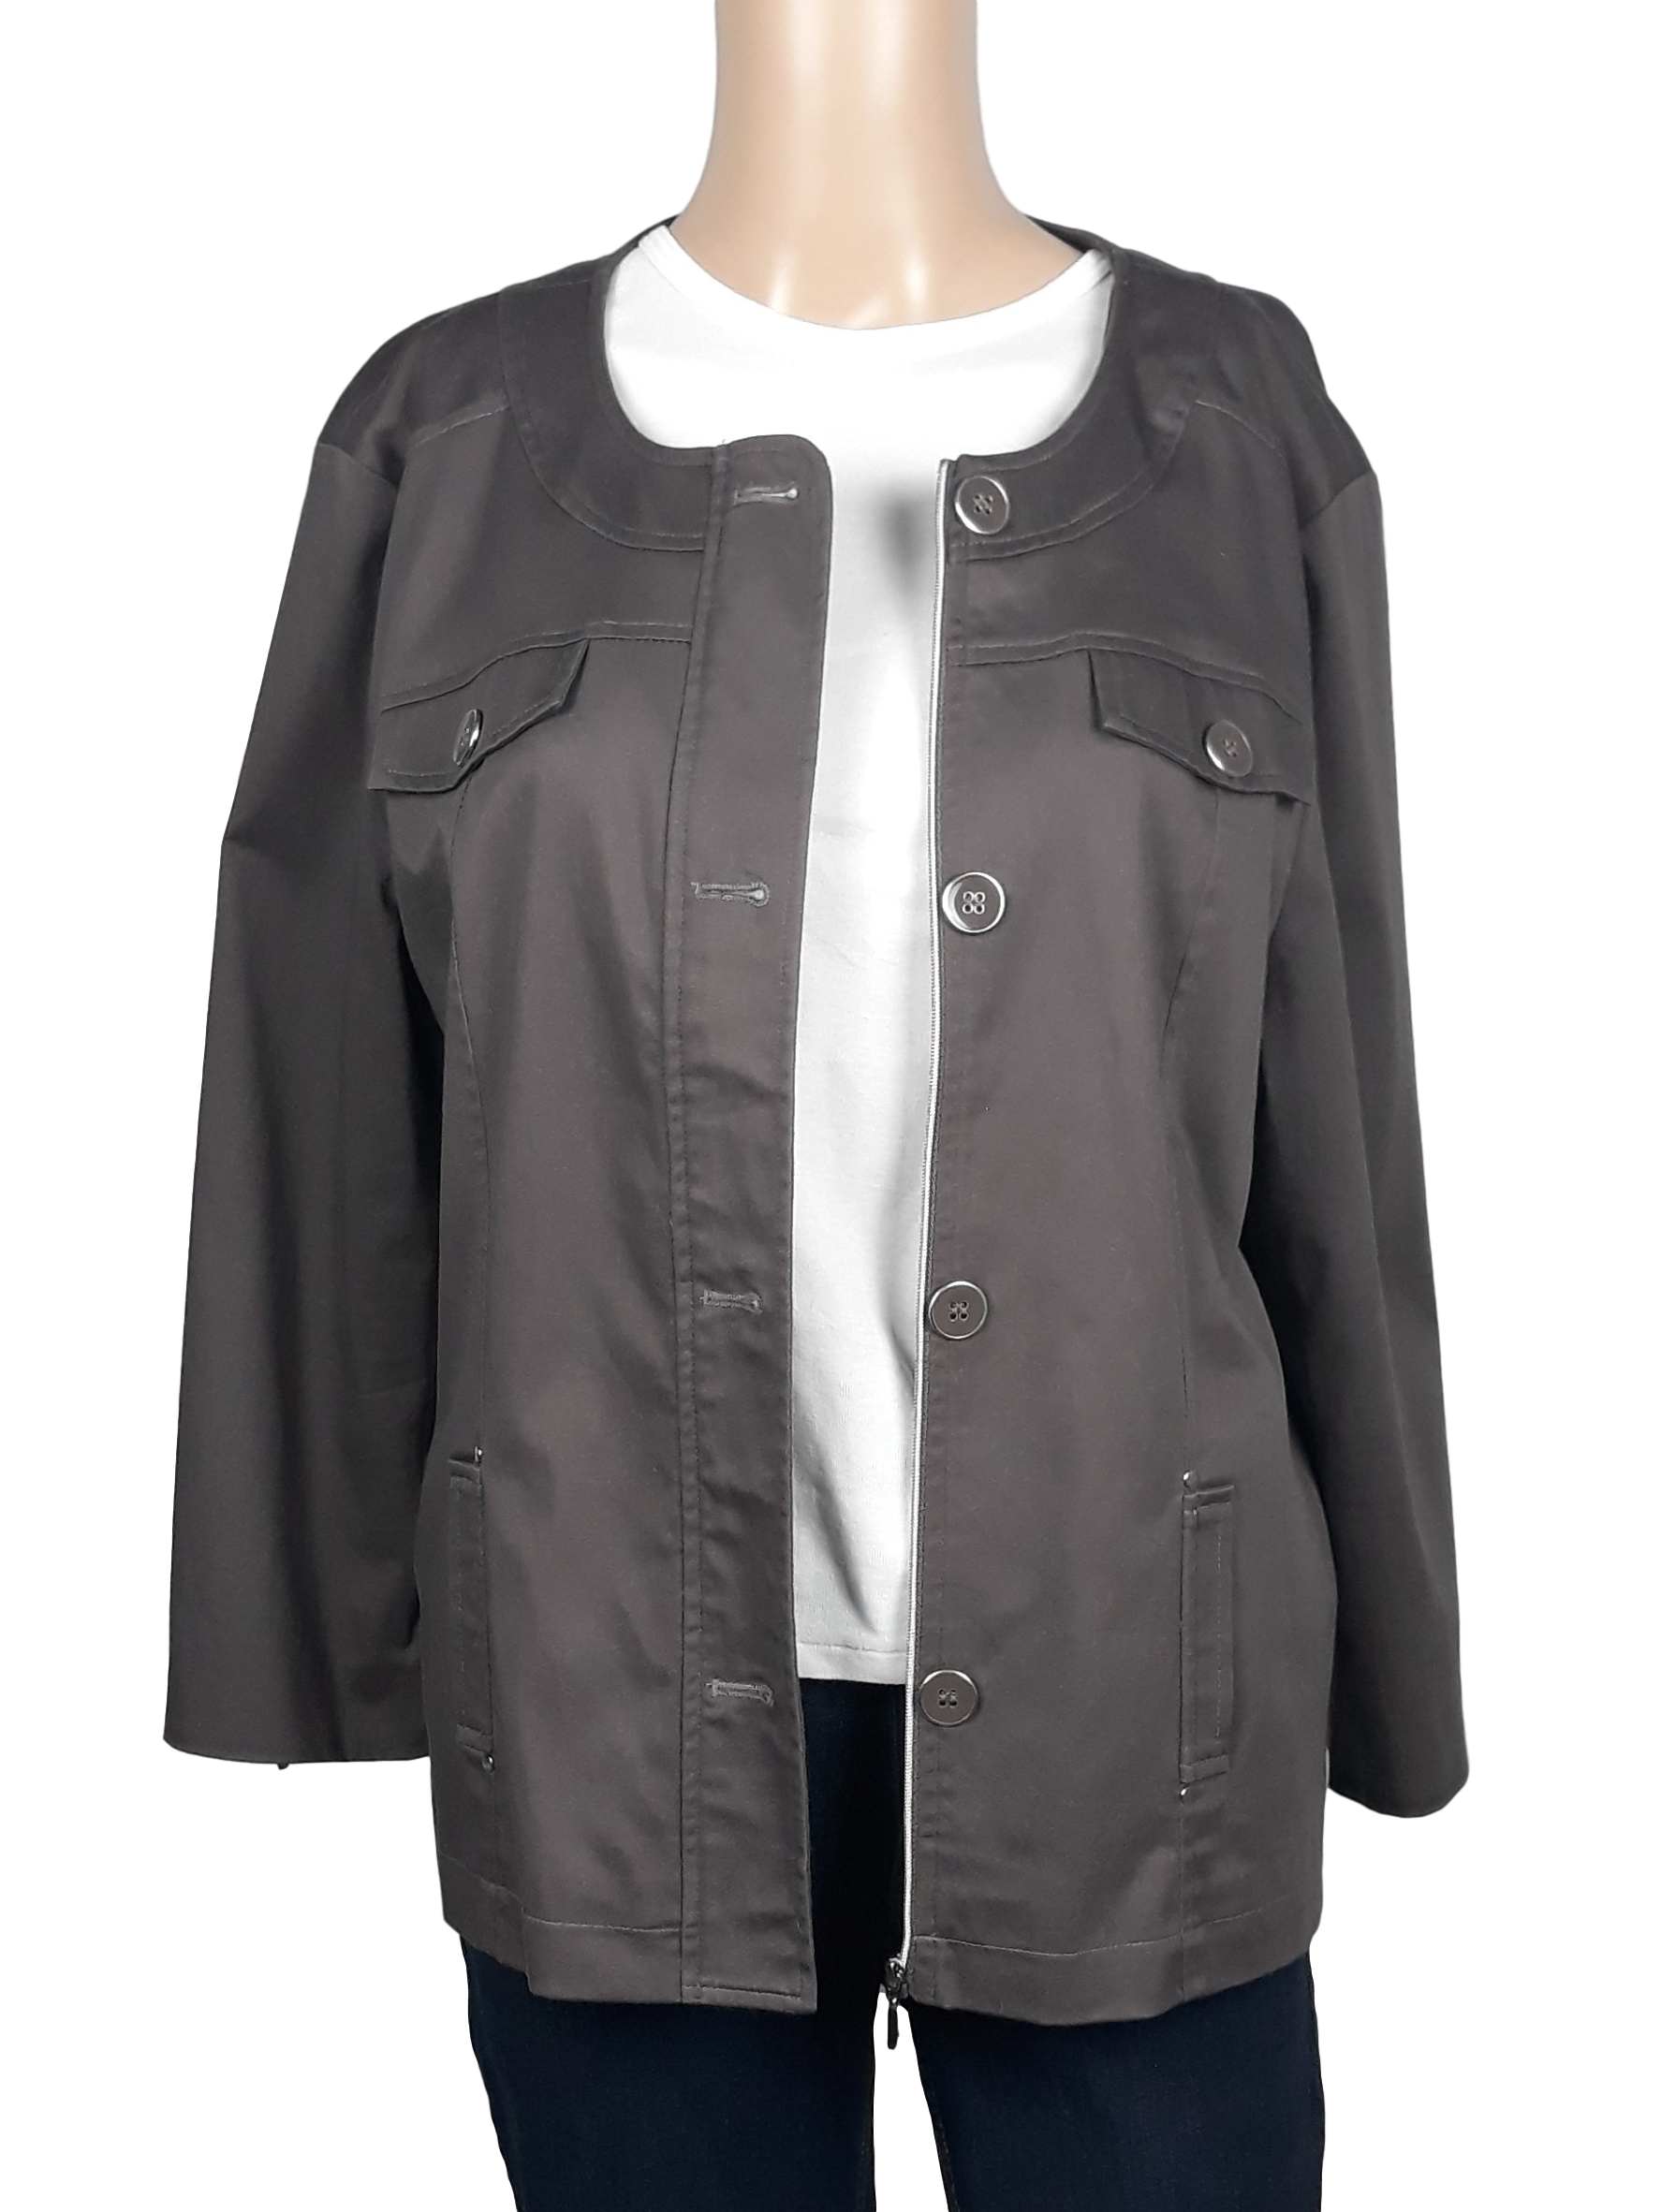 Veste Armand Thiery  - Taille 46